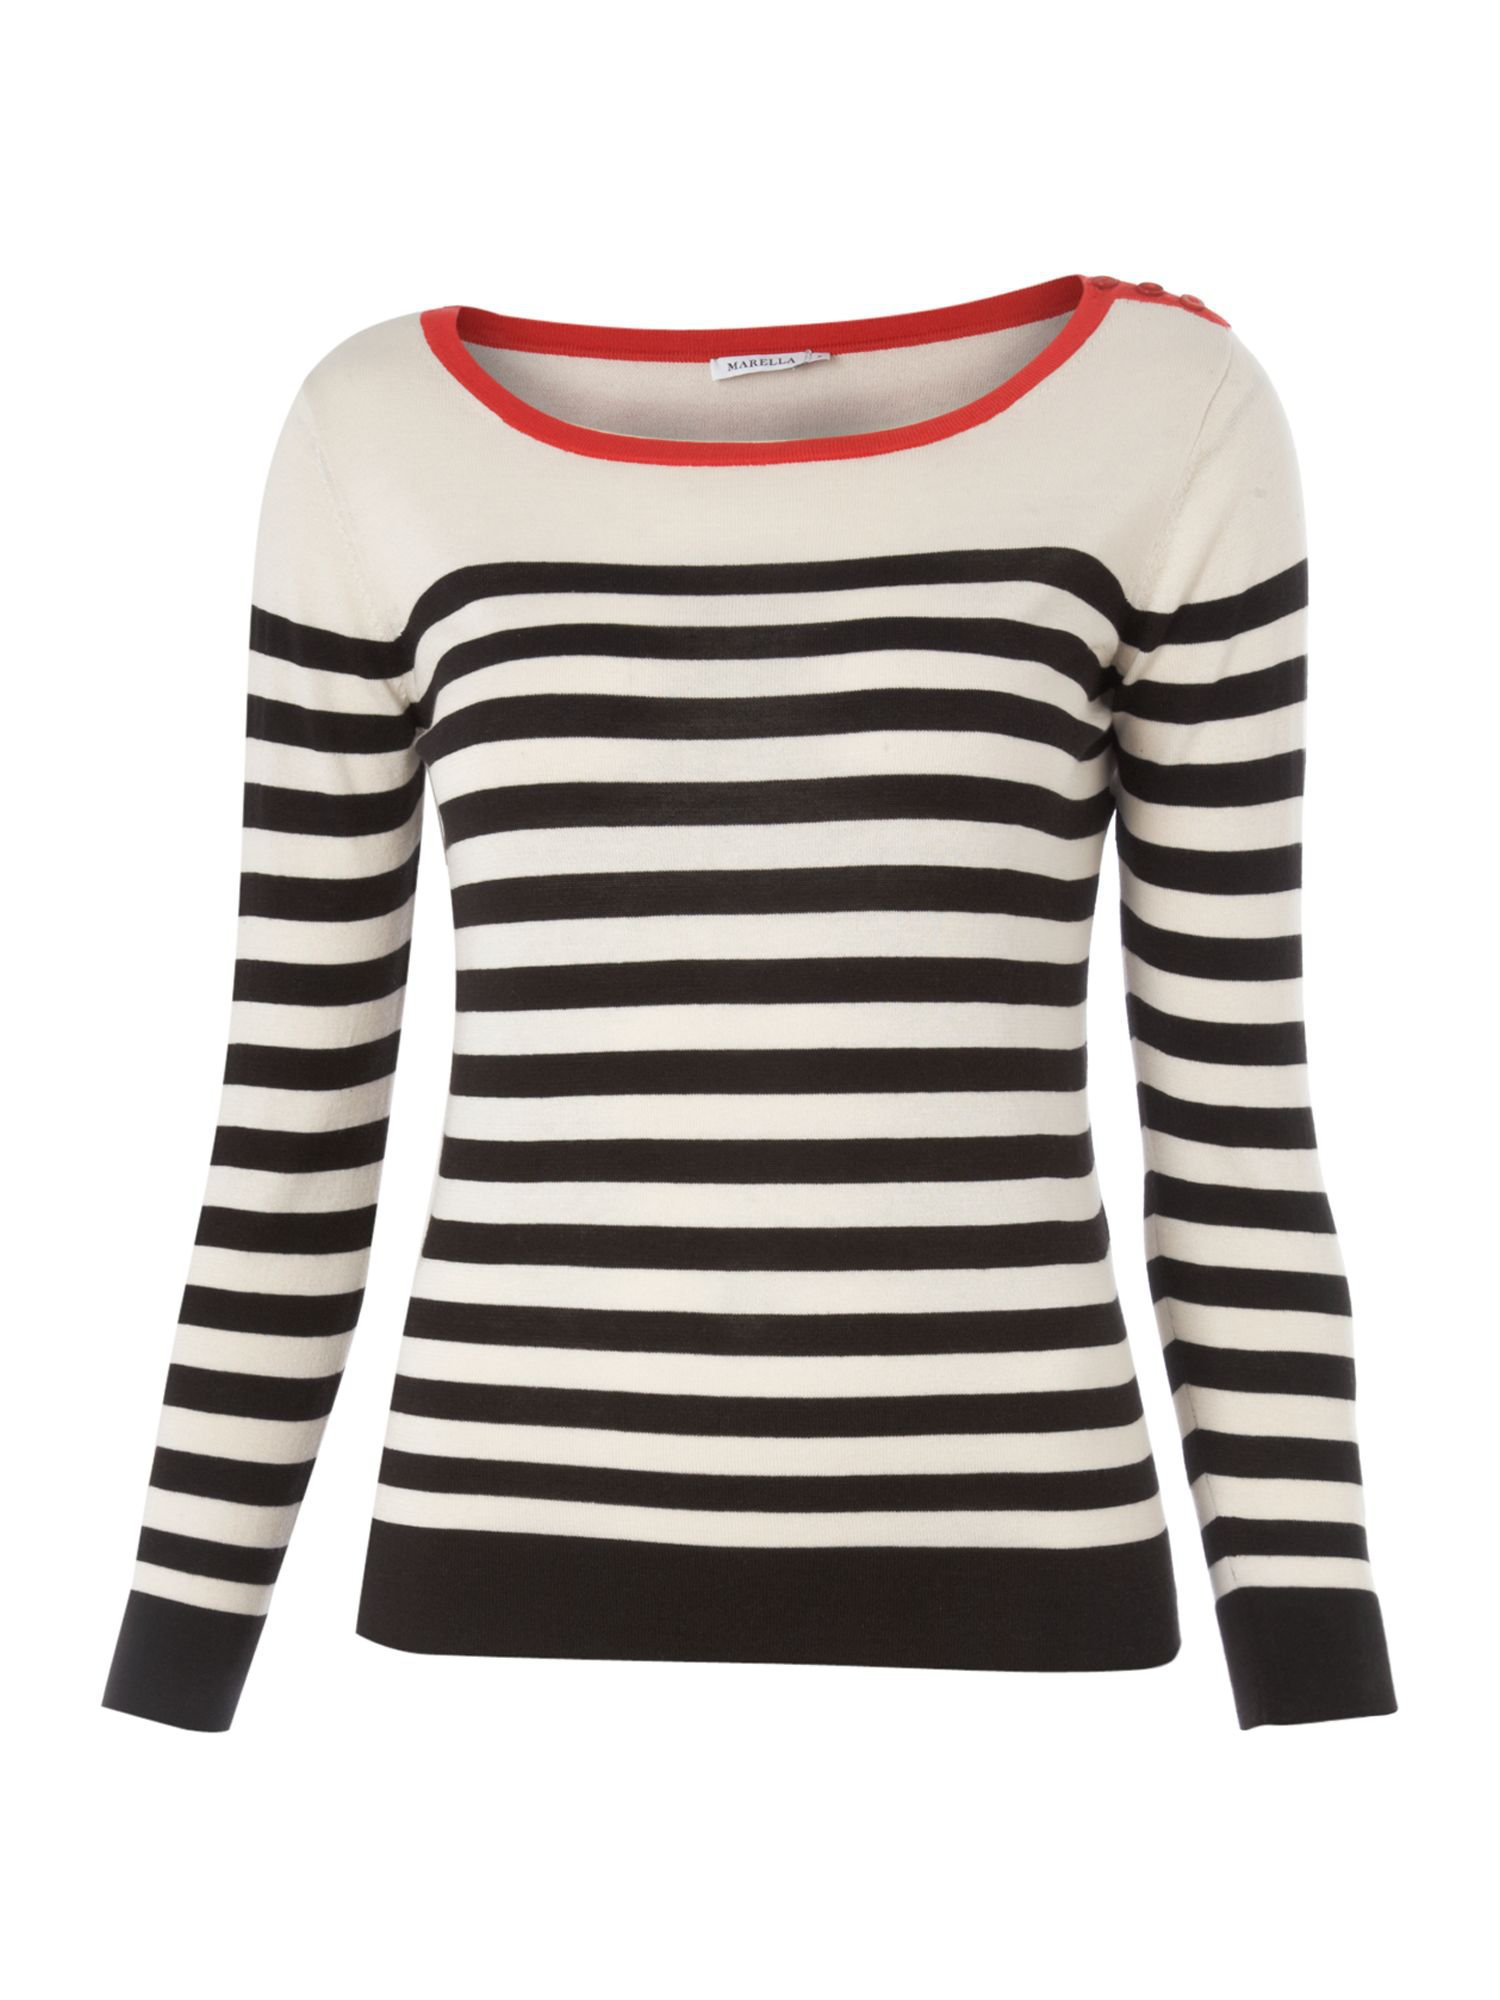 Marella Parole silk mix striped knit Cream - House of Fraser